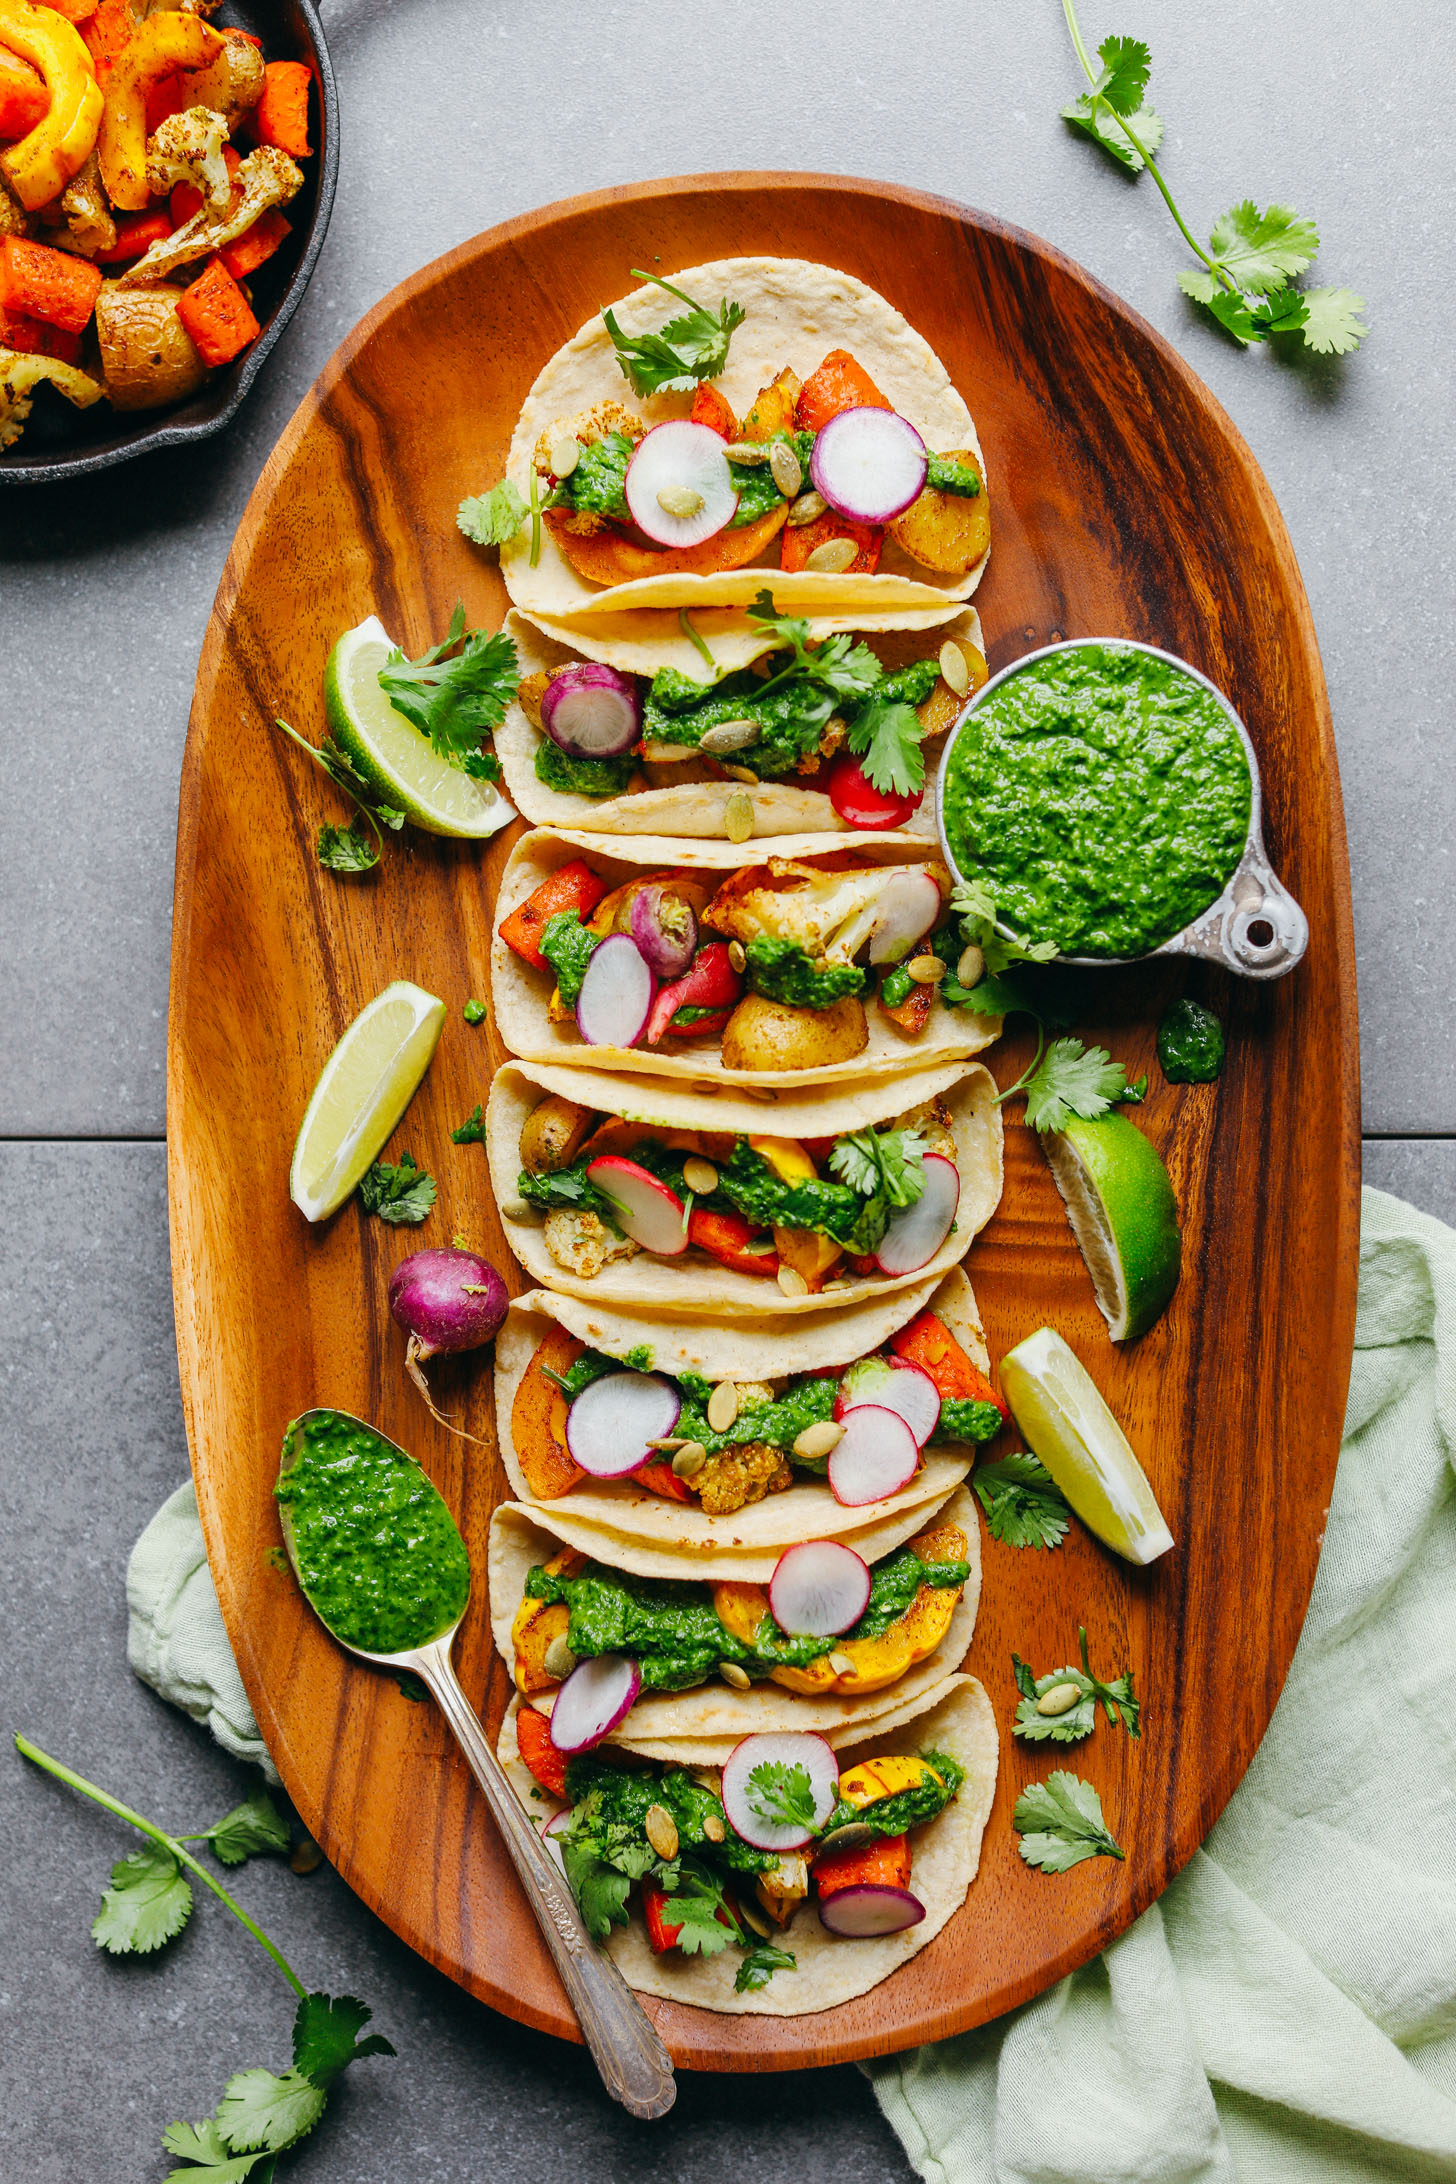 A large platter filled with 30-Minute Roasted Vegetable Tacos with Chimichurri for a healthy gluten-free, plant-based meal